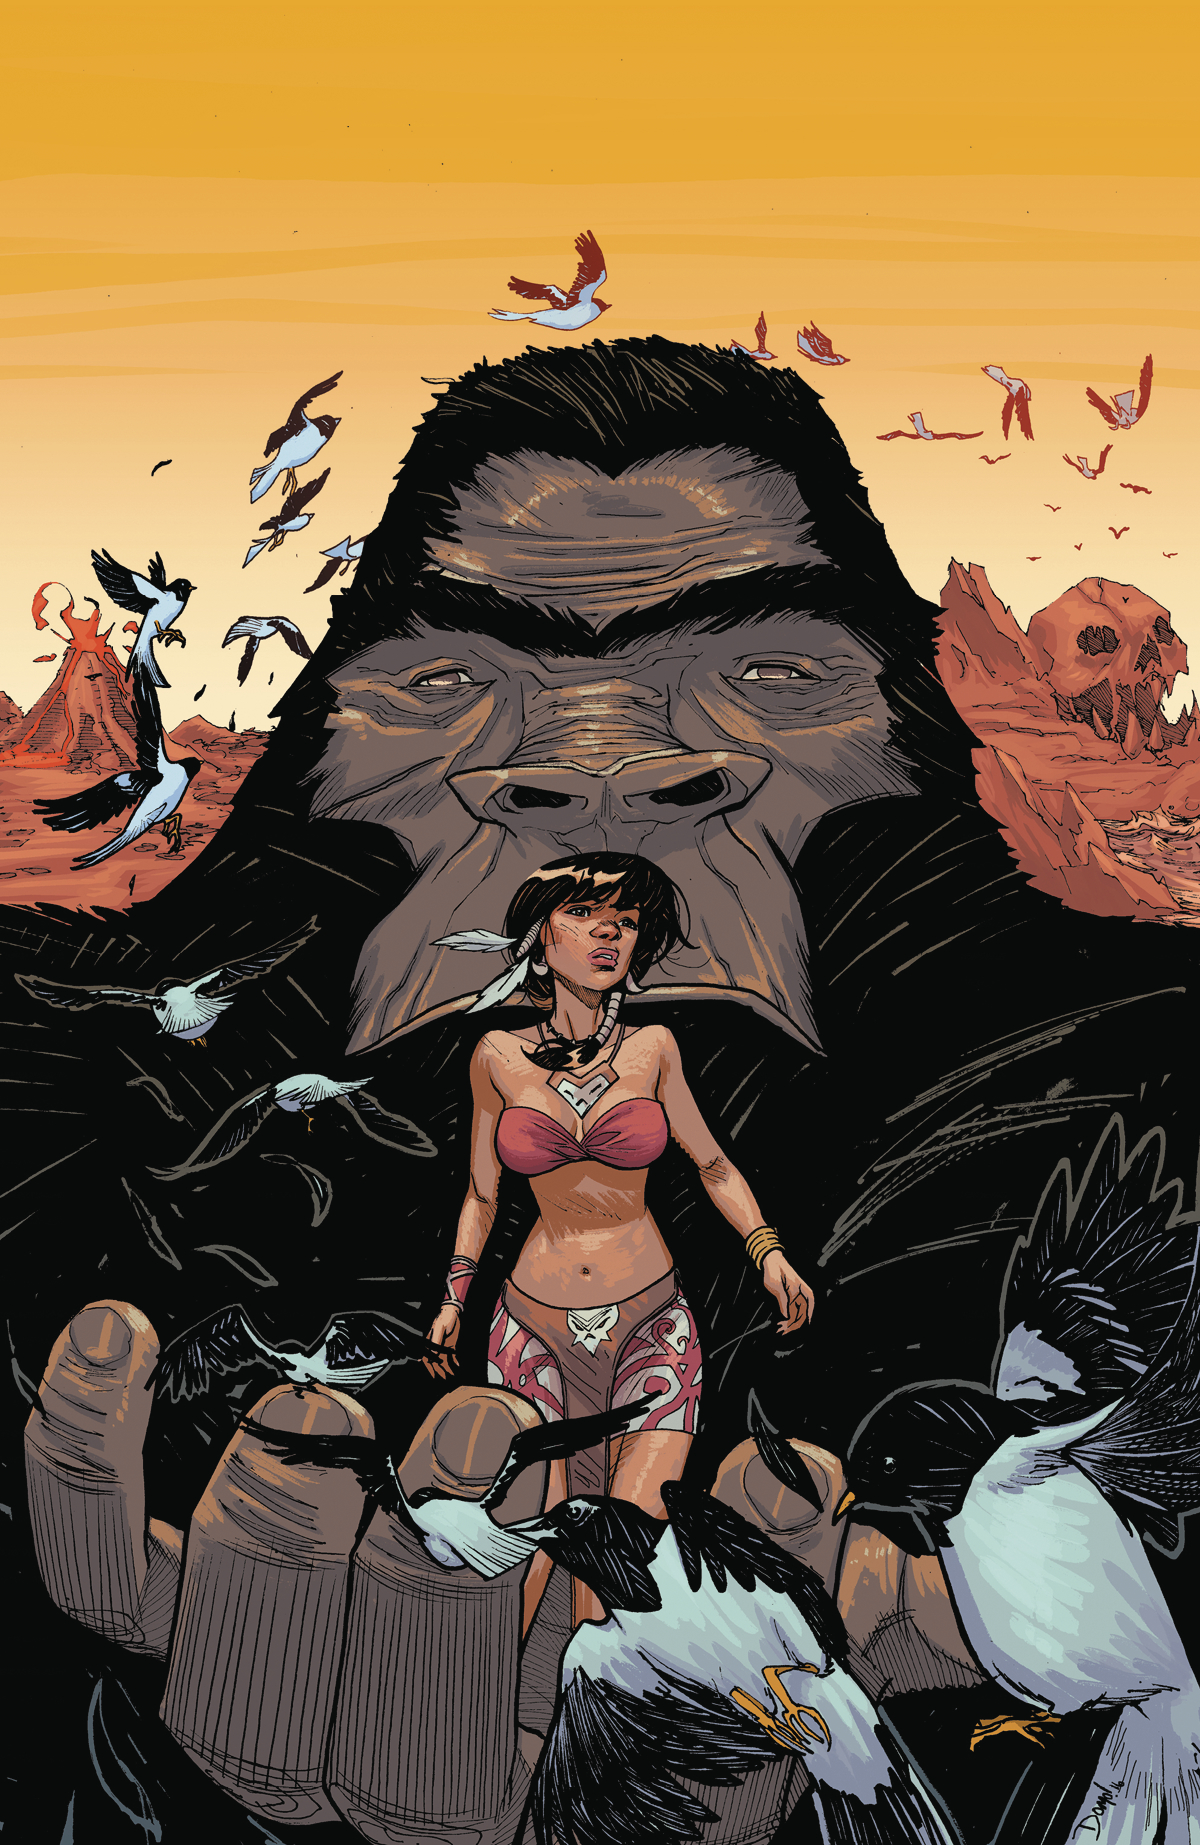 KONG OF SKULL ISLAND #1 (OF 6) BCC EXCLUSIVE